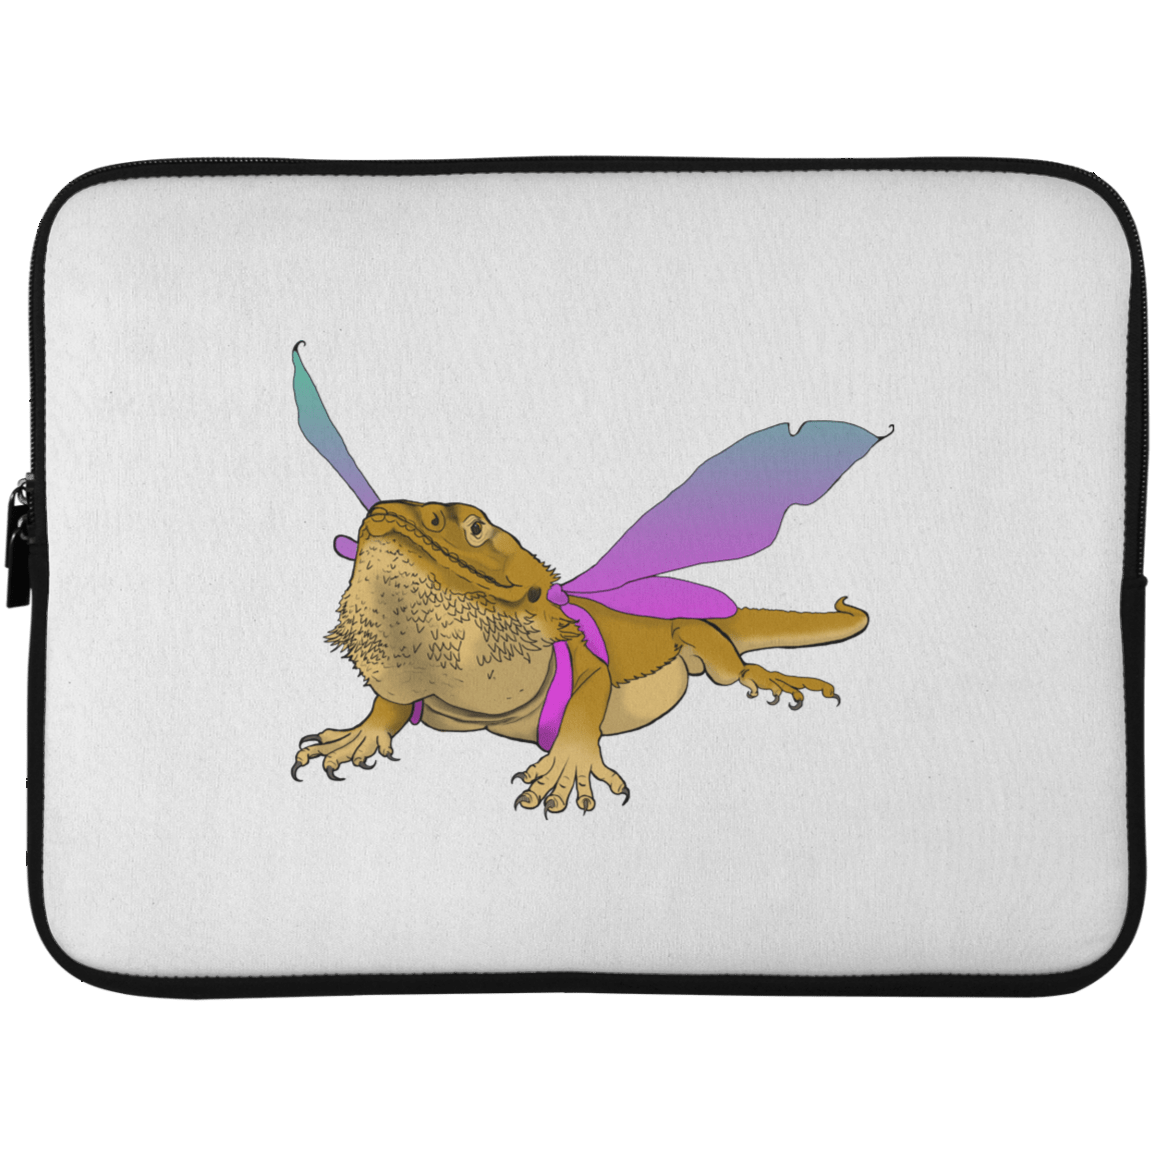 Laptop Sleeve - 15 Inch - Shambhala Reptile Supplies